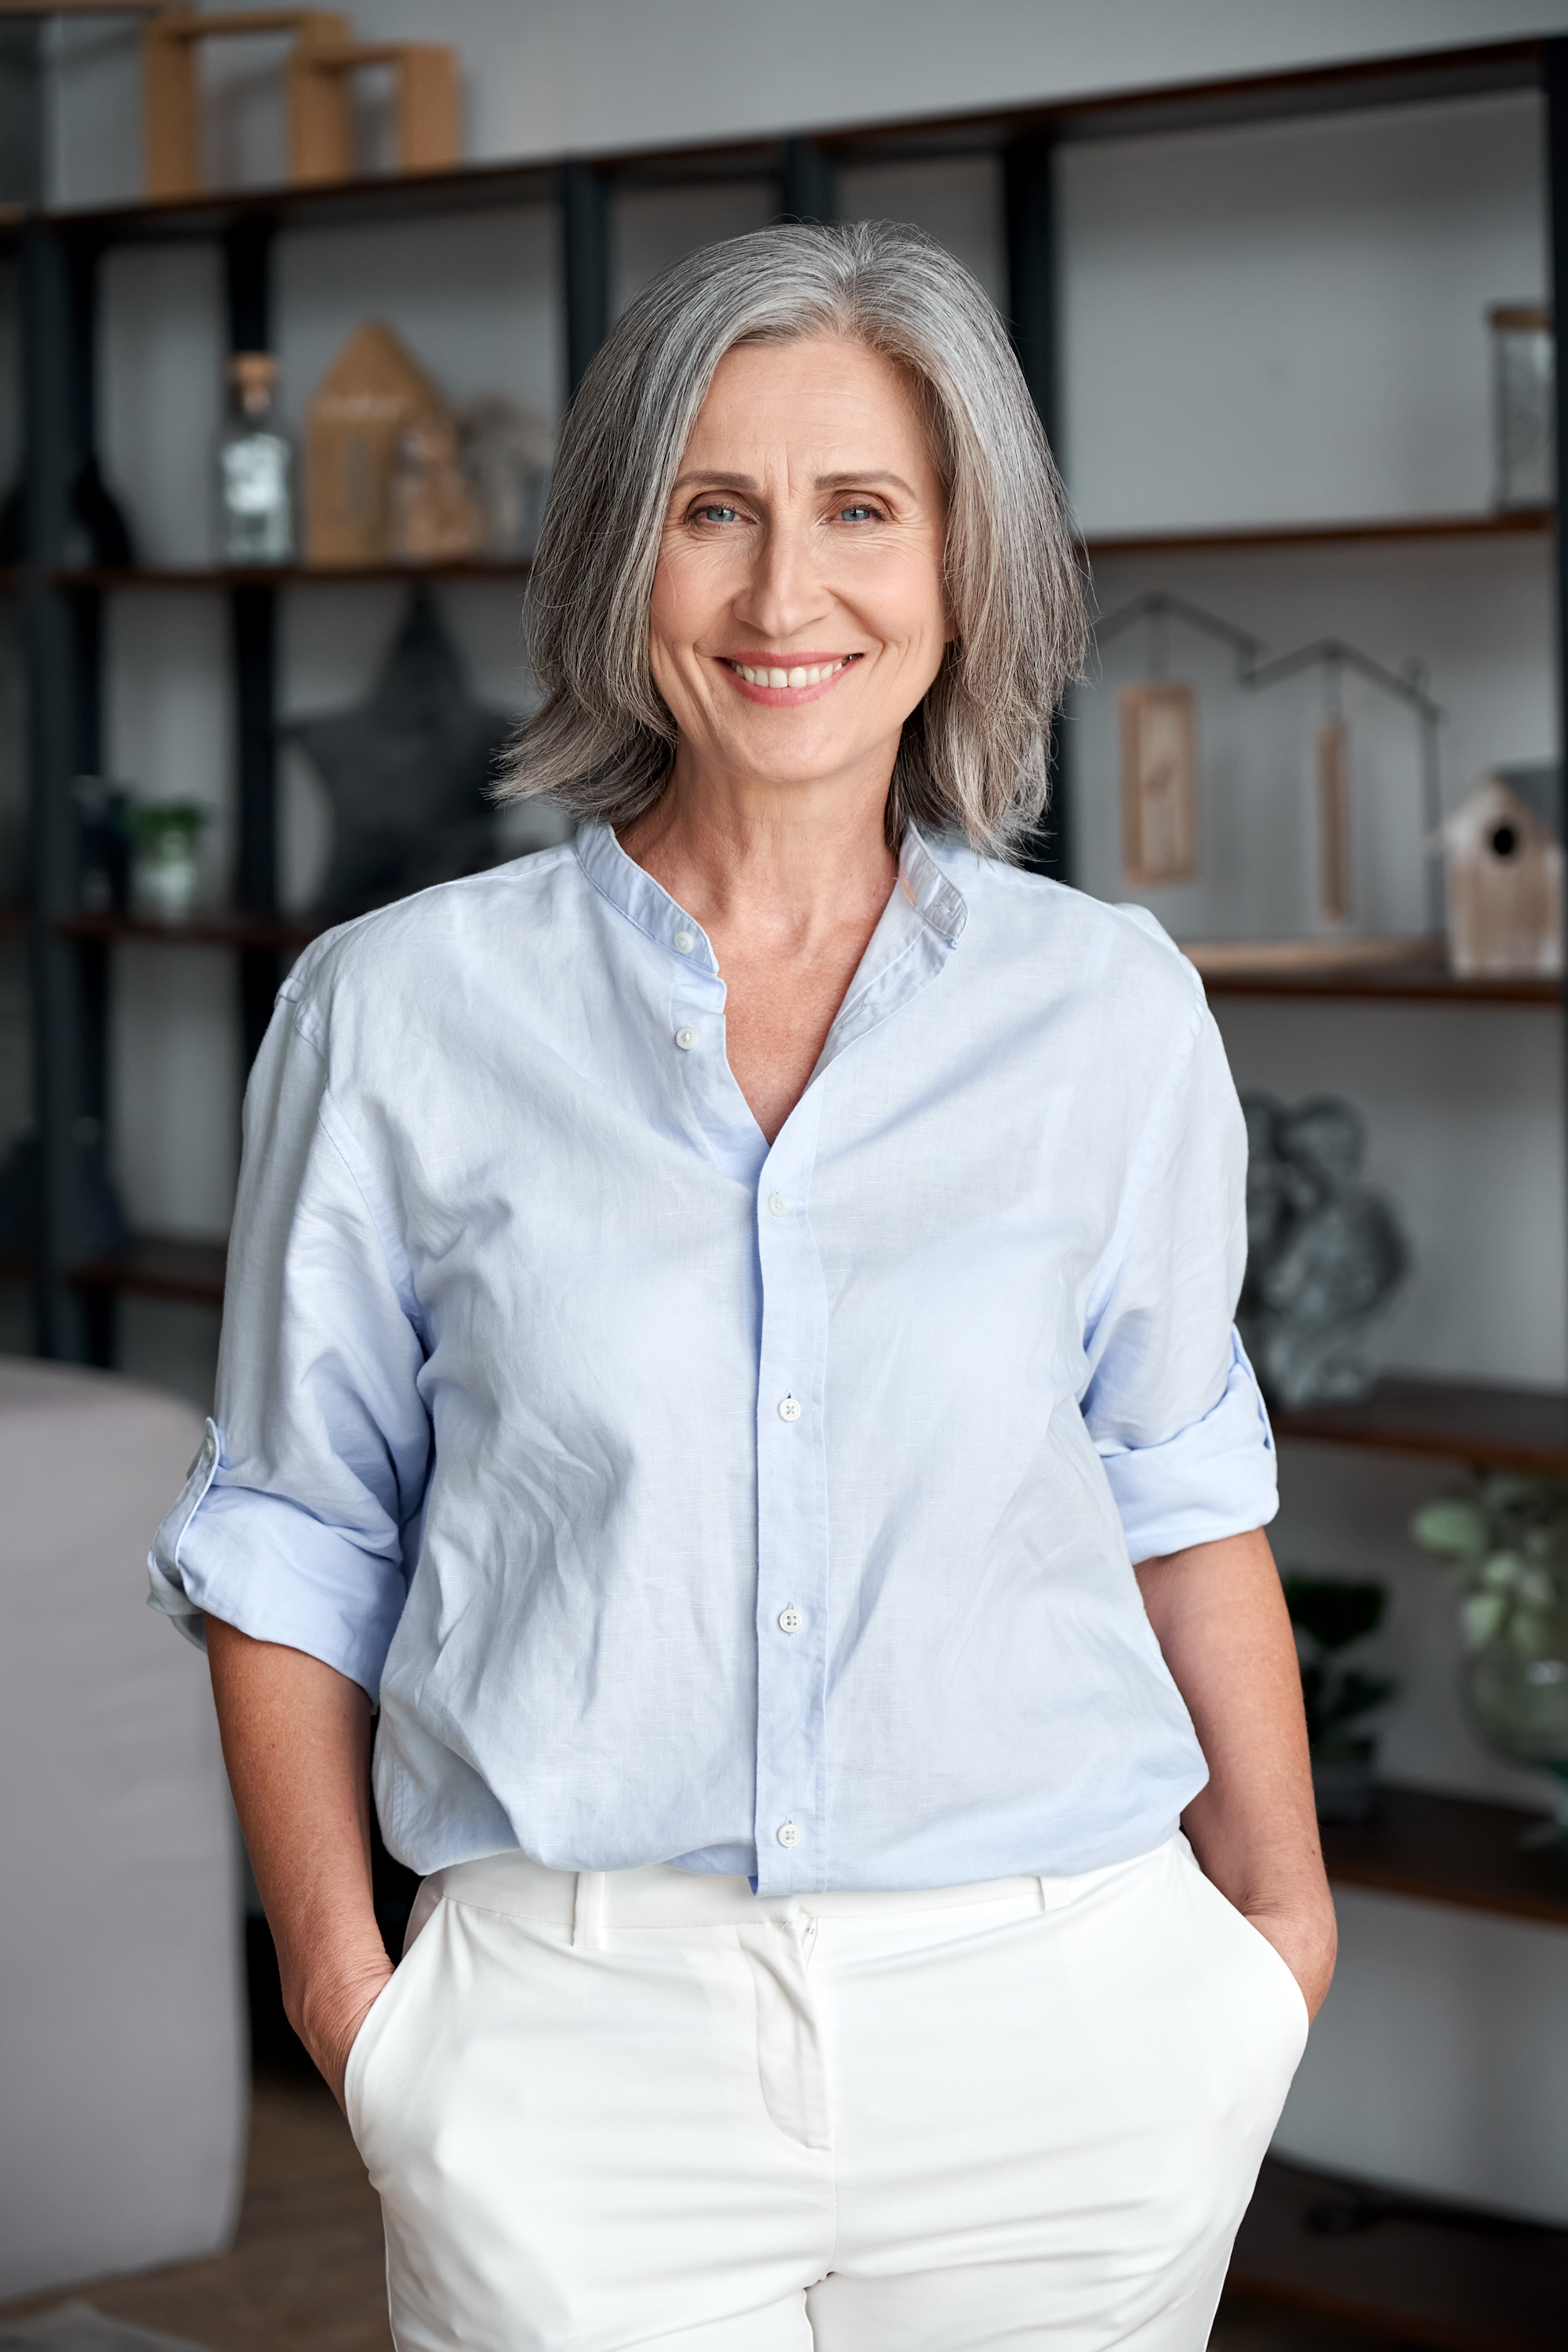 Mature woman standing and smiling in her office